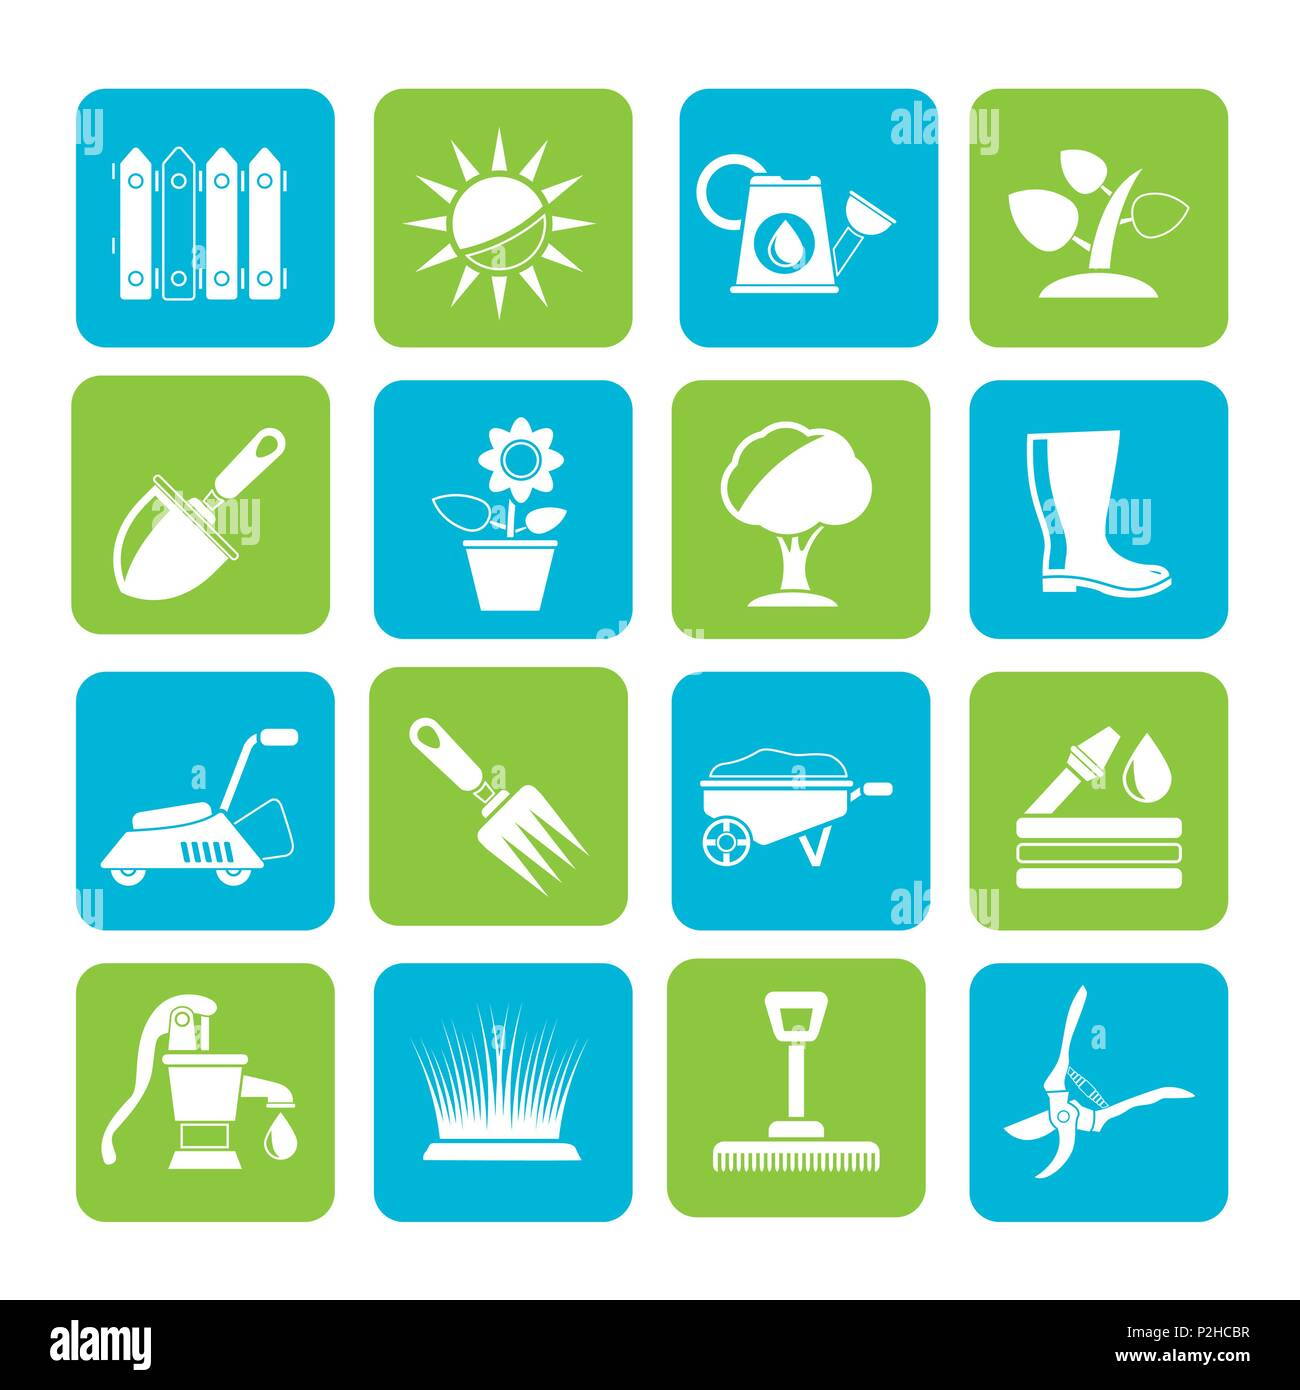 Silhouette Gardening tools and objects icons - vector icon set - Stock Vector